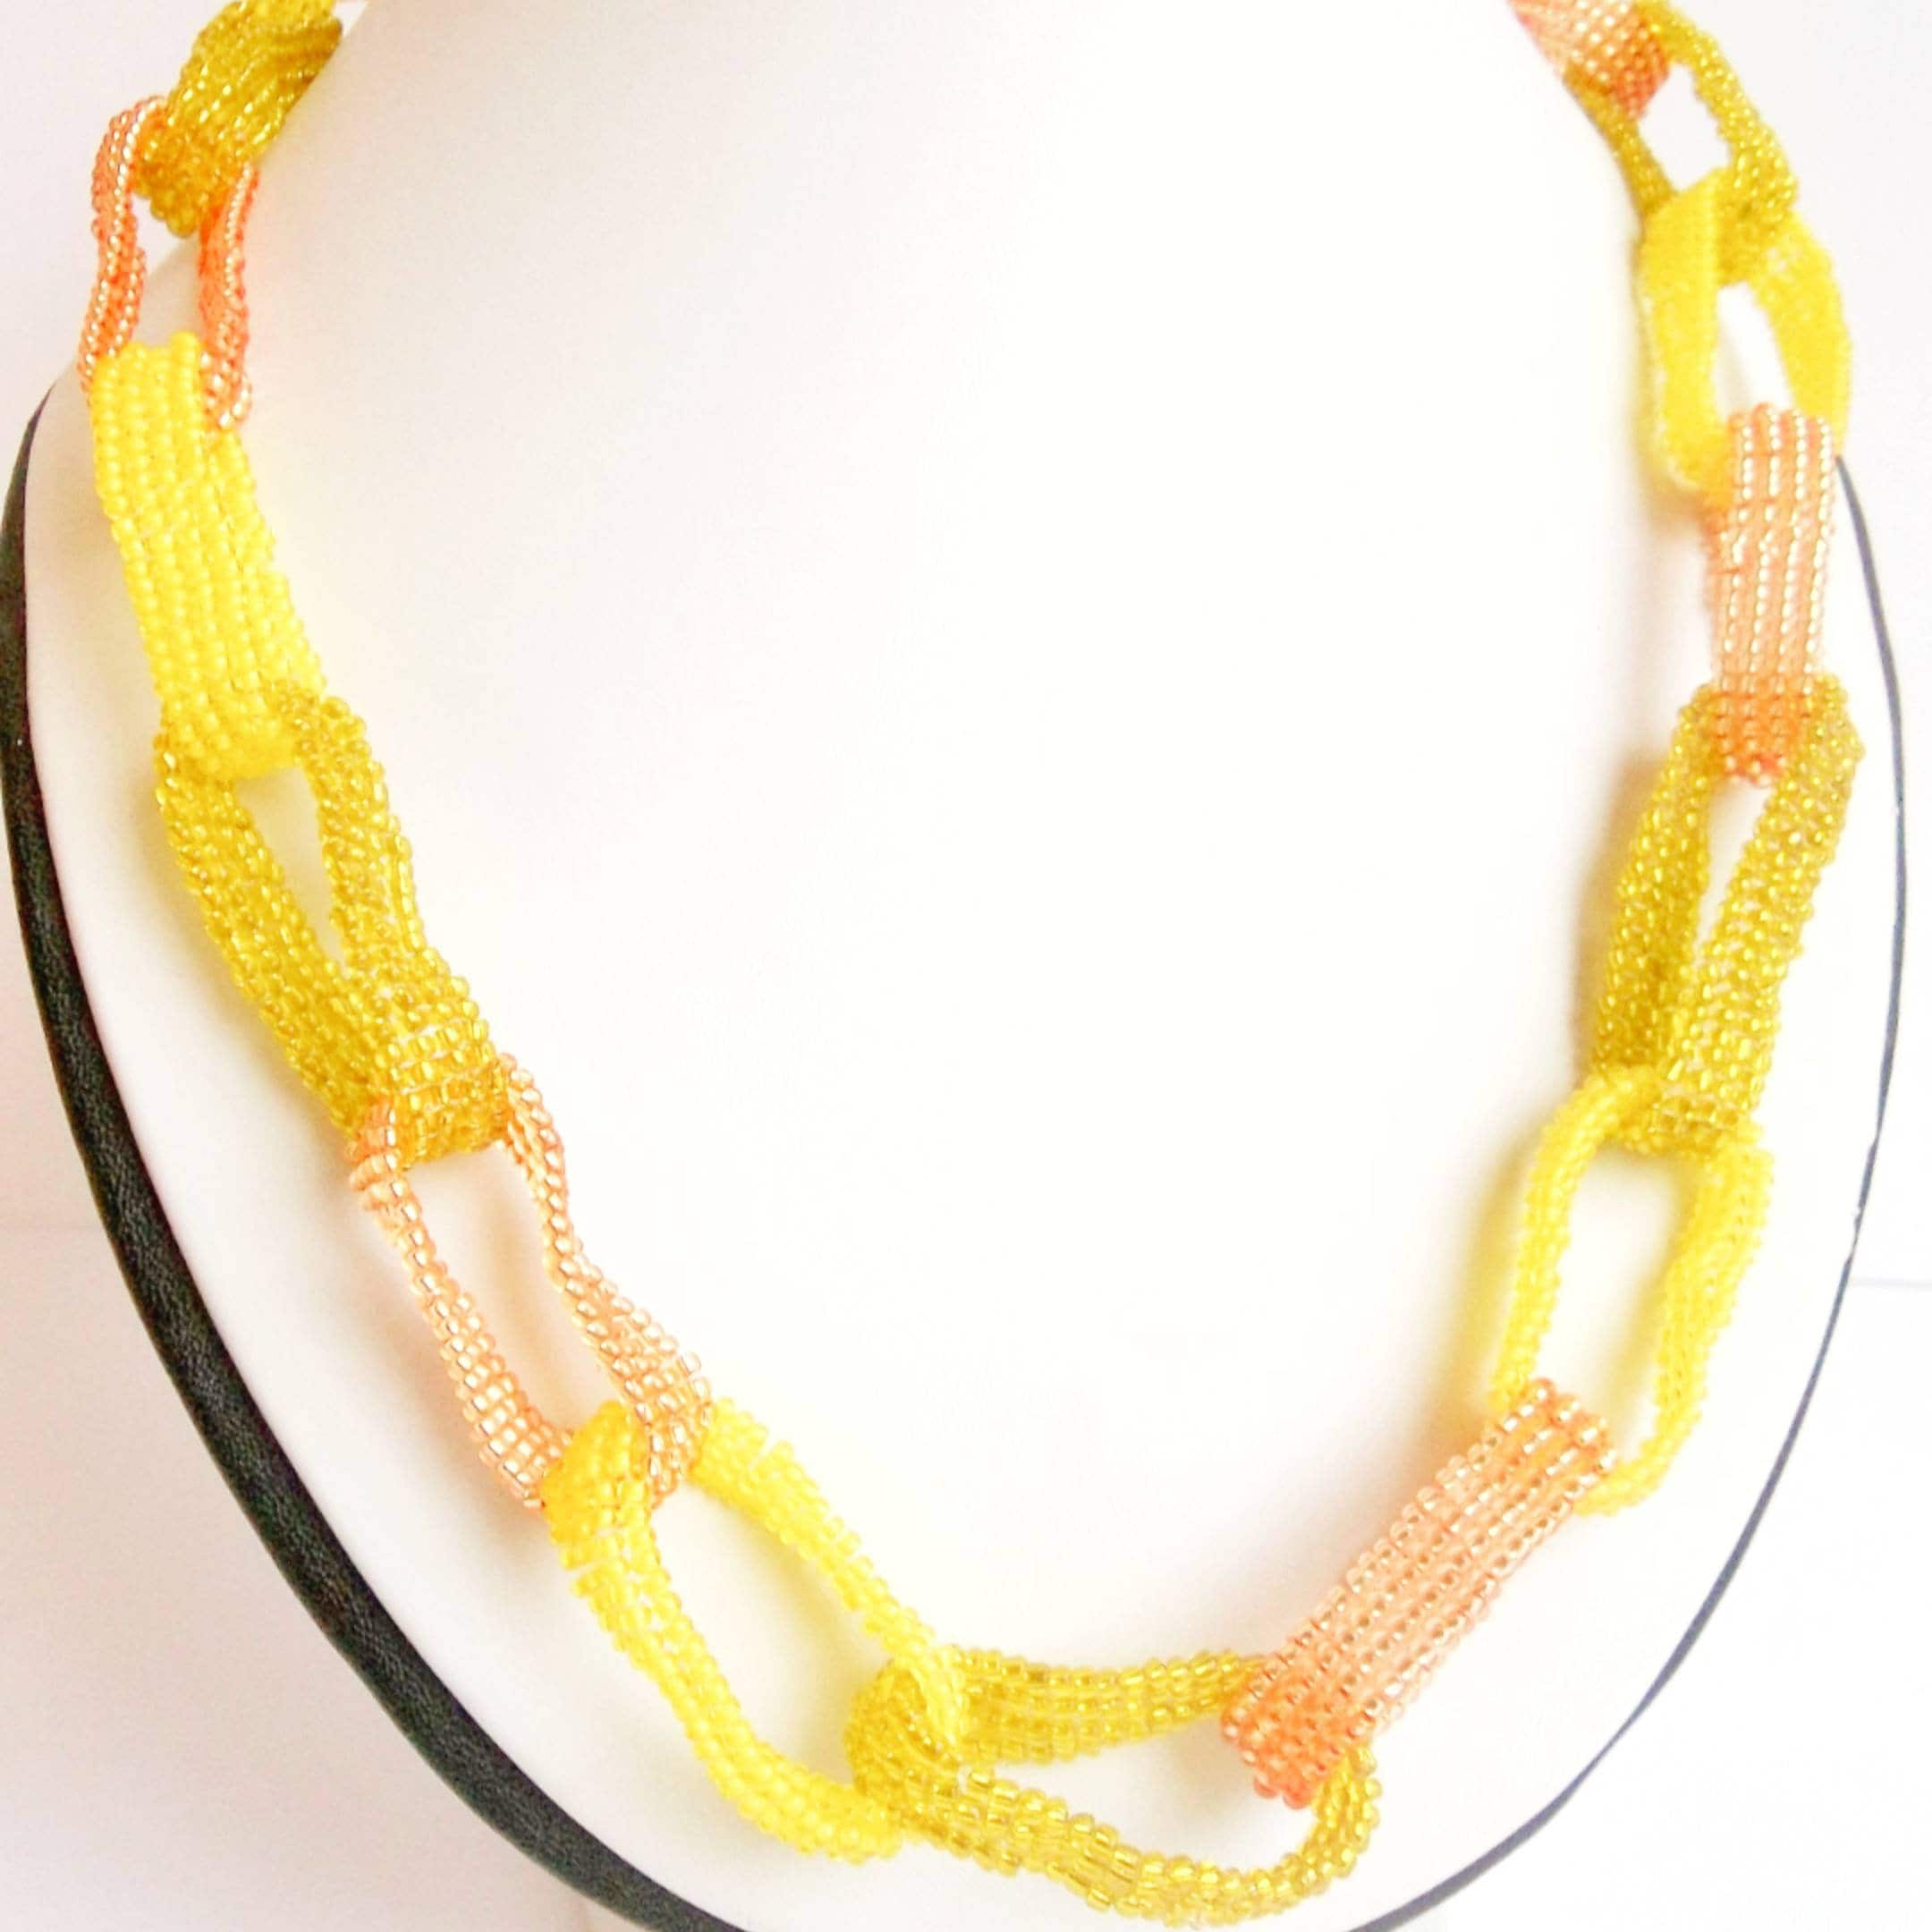 Yellow Gold Chain Seed Bead Necklace Unusual Jewelry Short Women Gift For Her Birthday Handmade